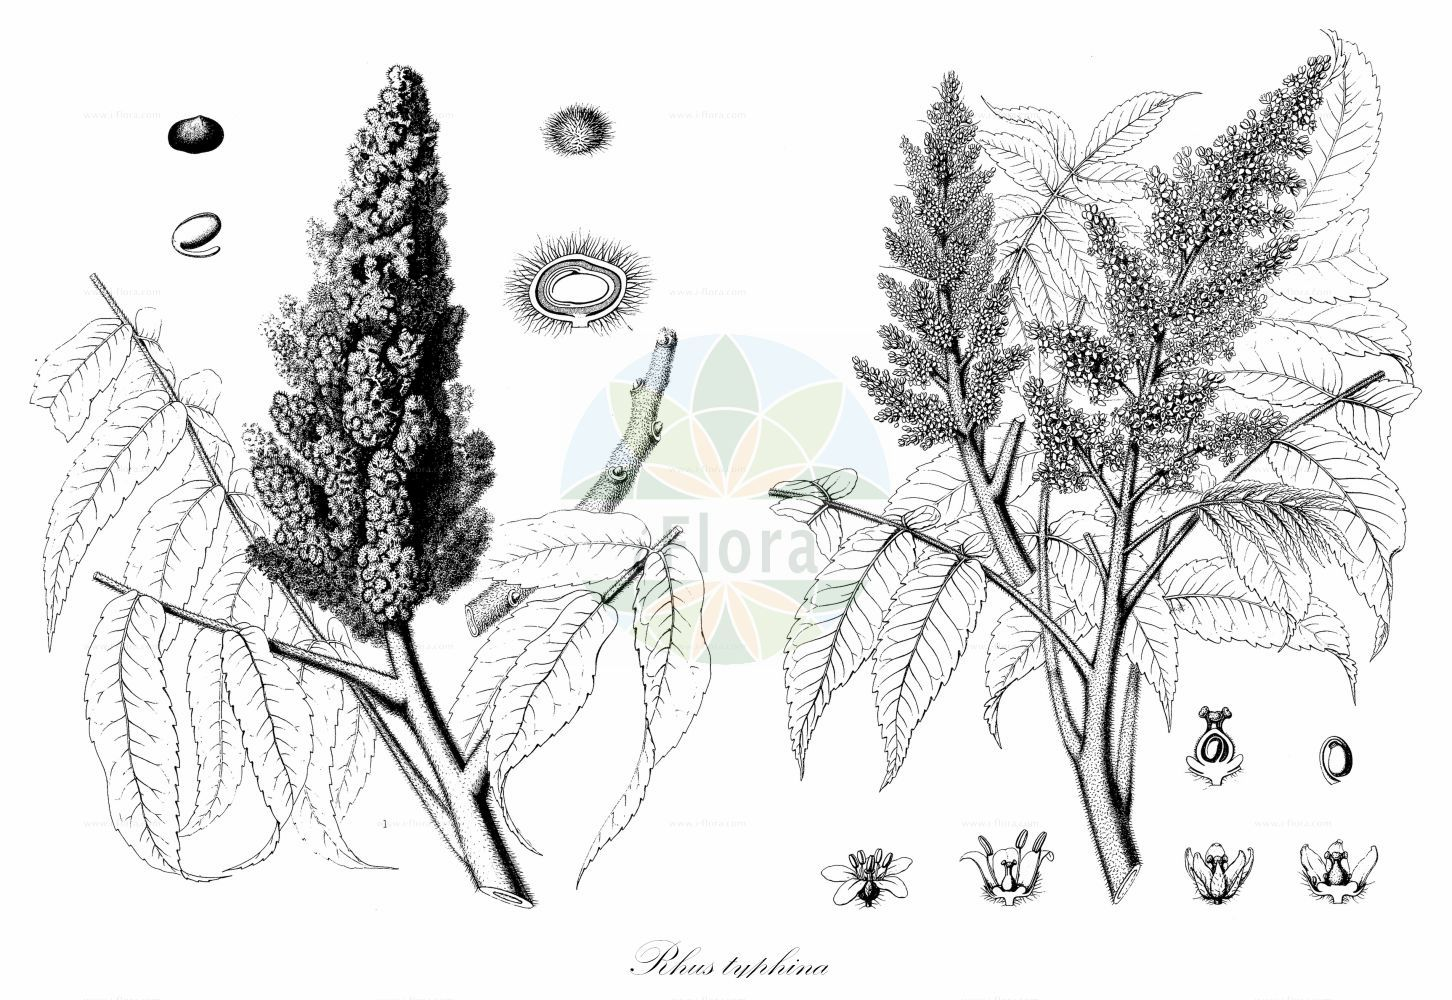 Historische Abbildung von Rhus typhina (Essigbaum - Stag's-horn Sumach). Das Bild zeigt Blatt, Bluete, Frucht und Same. ---- Historical Drawing of Rhus typhina (Essigbaum - Stag's-horn Sumach).The image is showing leaf, flower, fruit and seed. (Rhus typhina,Essigbaum,Stag's-horn Sumach,Rhus hirta,,Hirschkolben-Sumach,Hairy Sumac,Hairy Sumach,Staghorn Sumac,Staghorn Sumach,Vinegar Plant,Vinegar Tree,Virginia Sumac,Virginia Sumach,Rhus,Sumach,Sumac,Anacardiaceae,Kaschugewaechse;Pistaziengewaechse;Sumachgewaechse,Cashew family,Blatt,Bluete,Frucht,Same,leaf,flower,fruit,seed,Sargent (1898-1902))